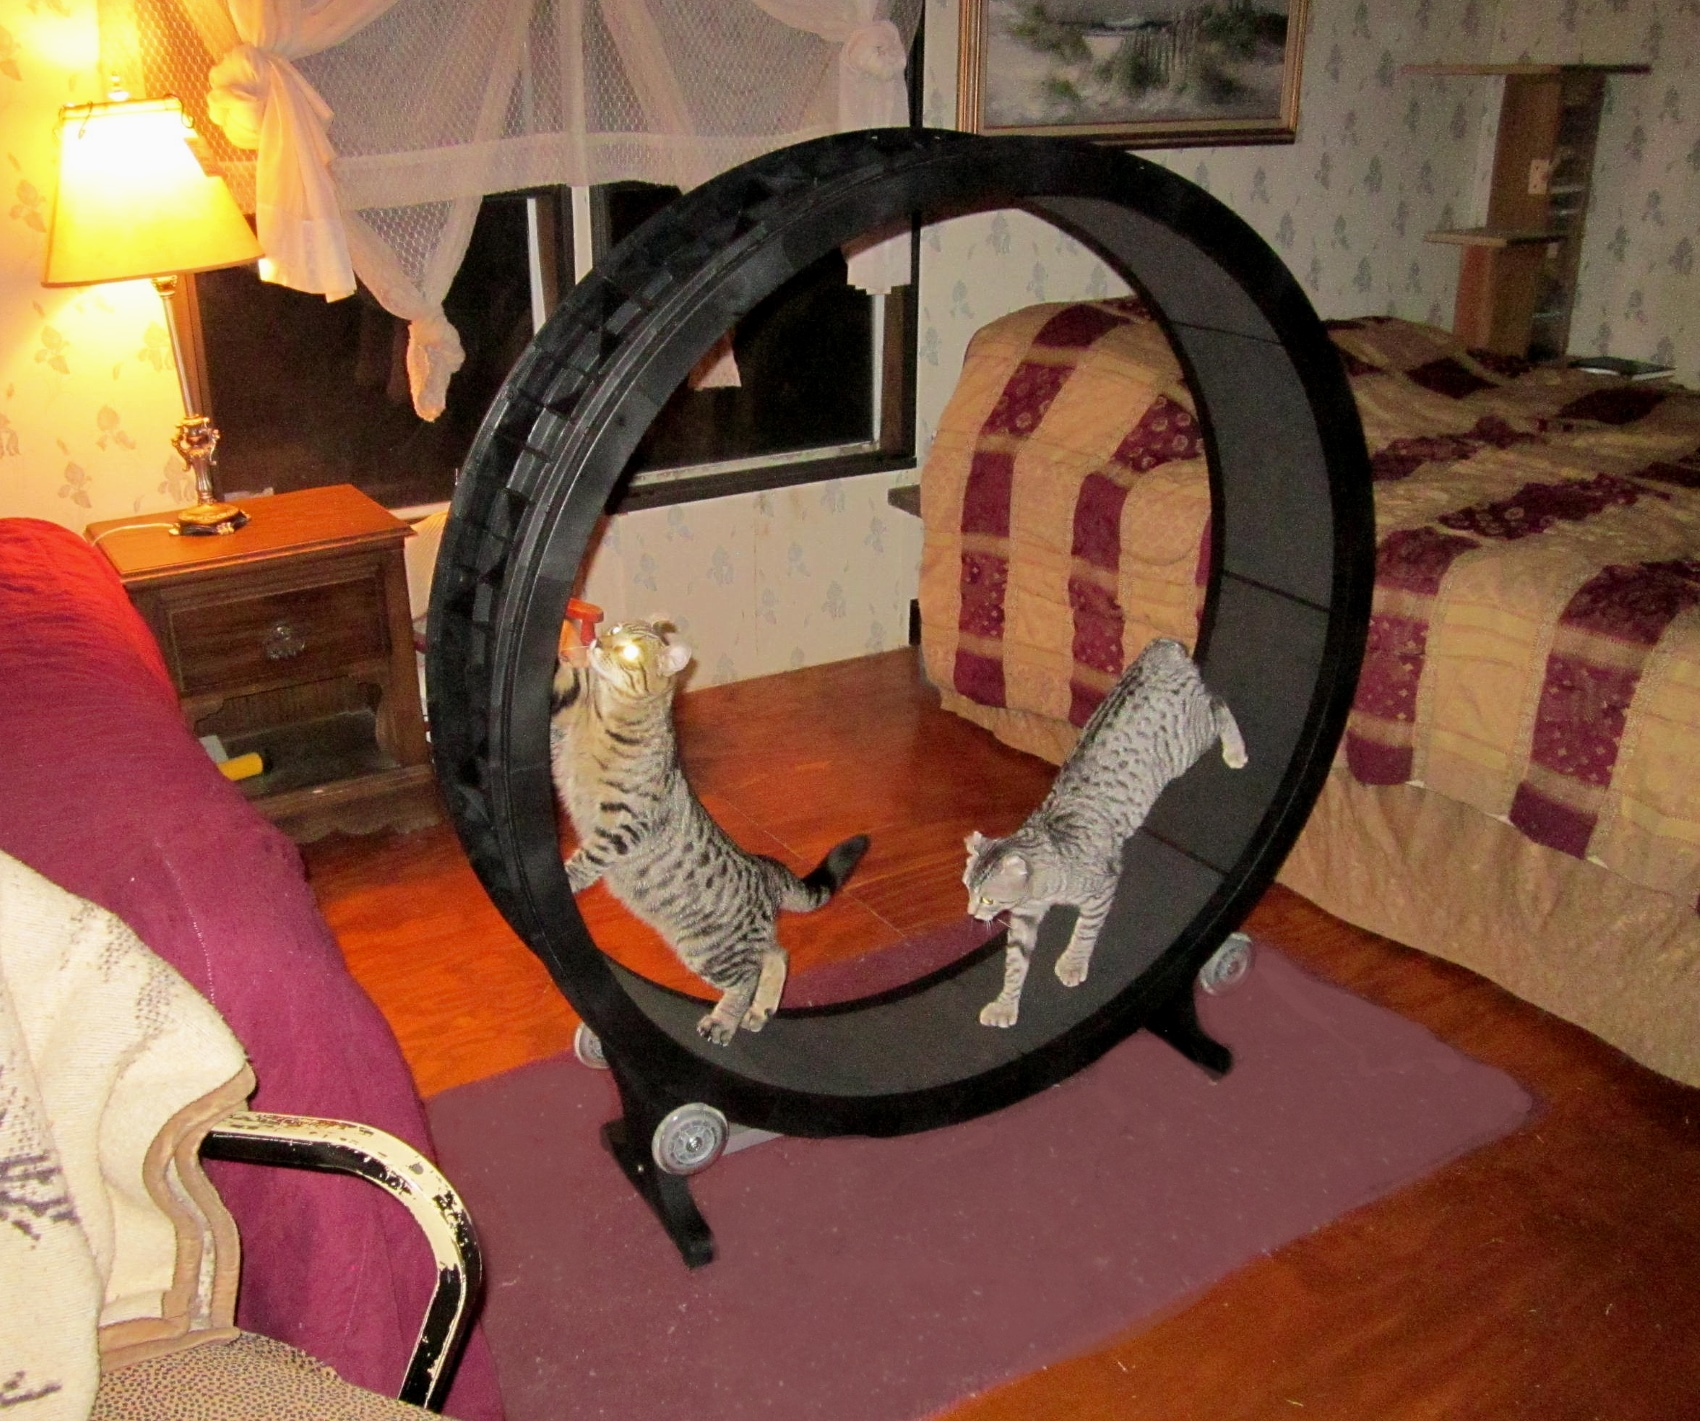 Shepherds Lair Lynx on Cat Wheel